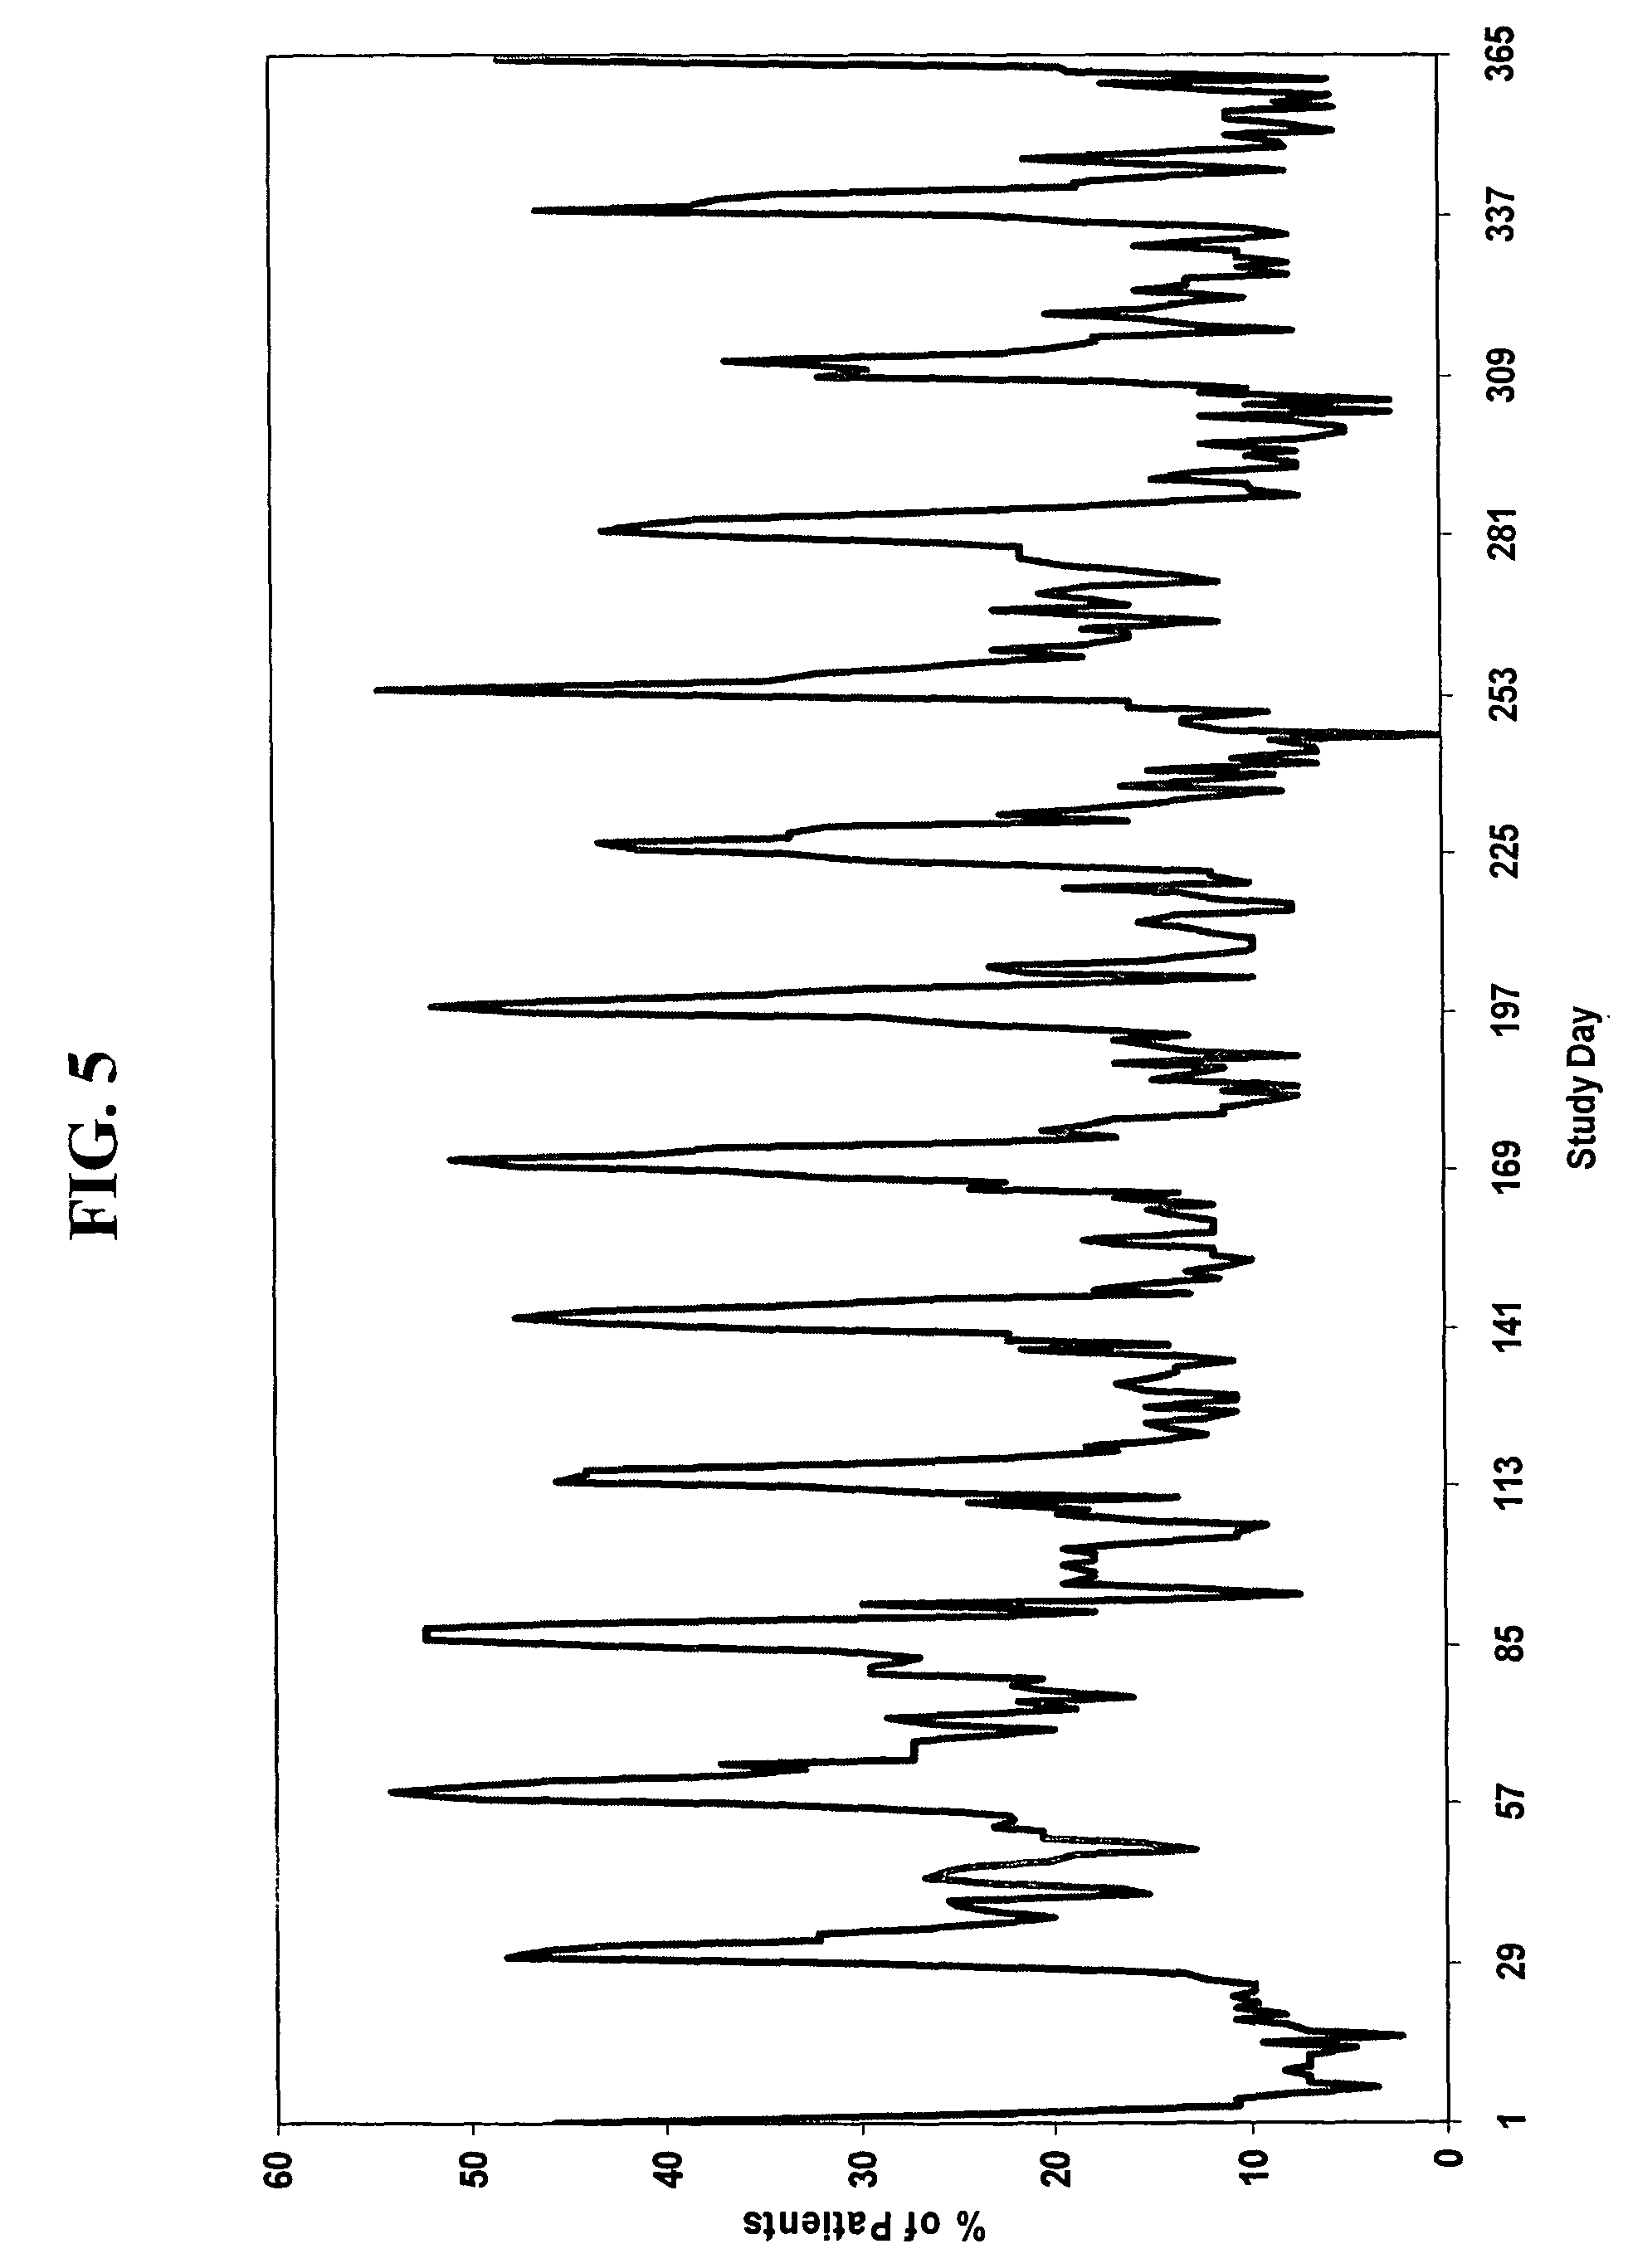 US7855190B2 - Methods of hormonal treatment utilizing